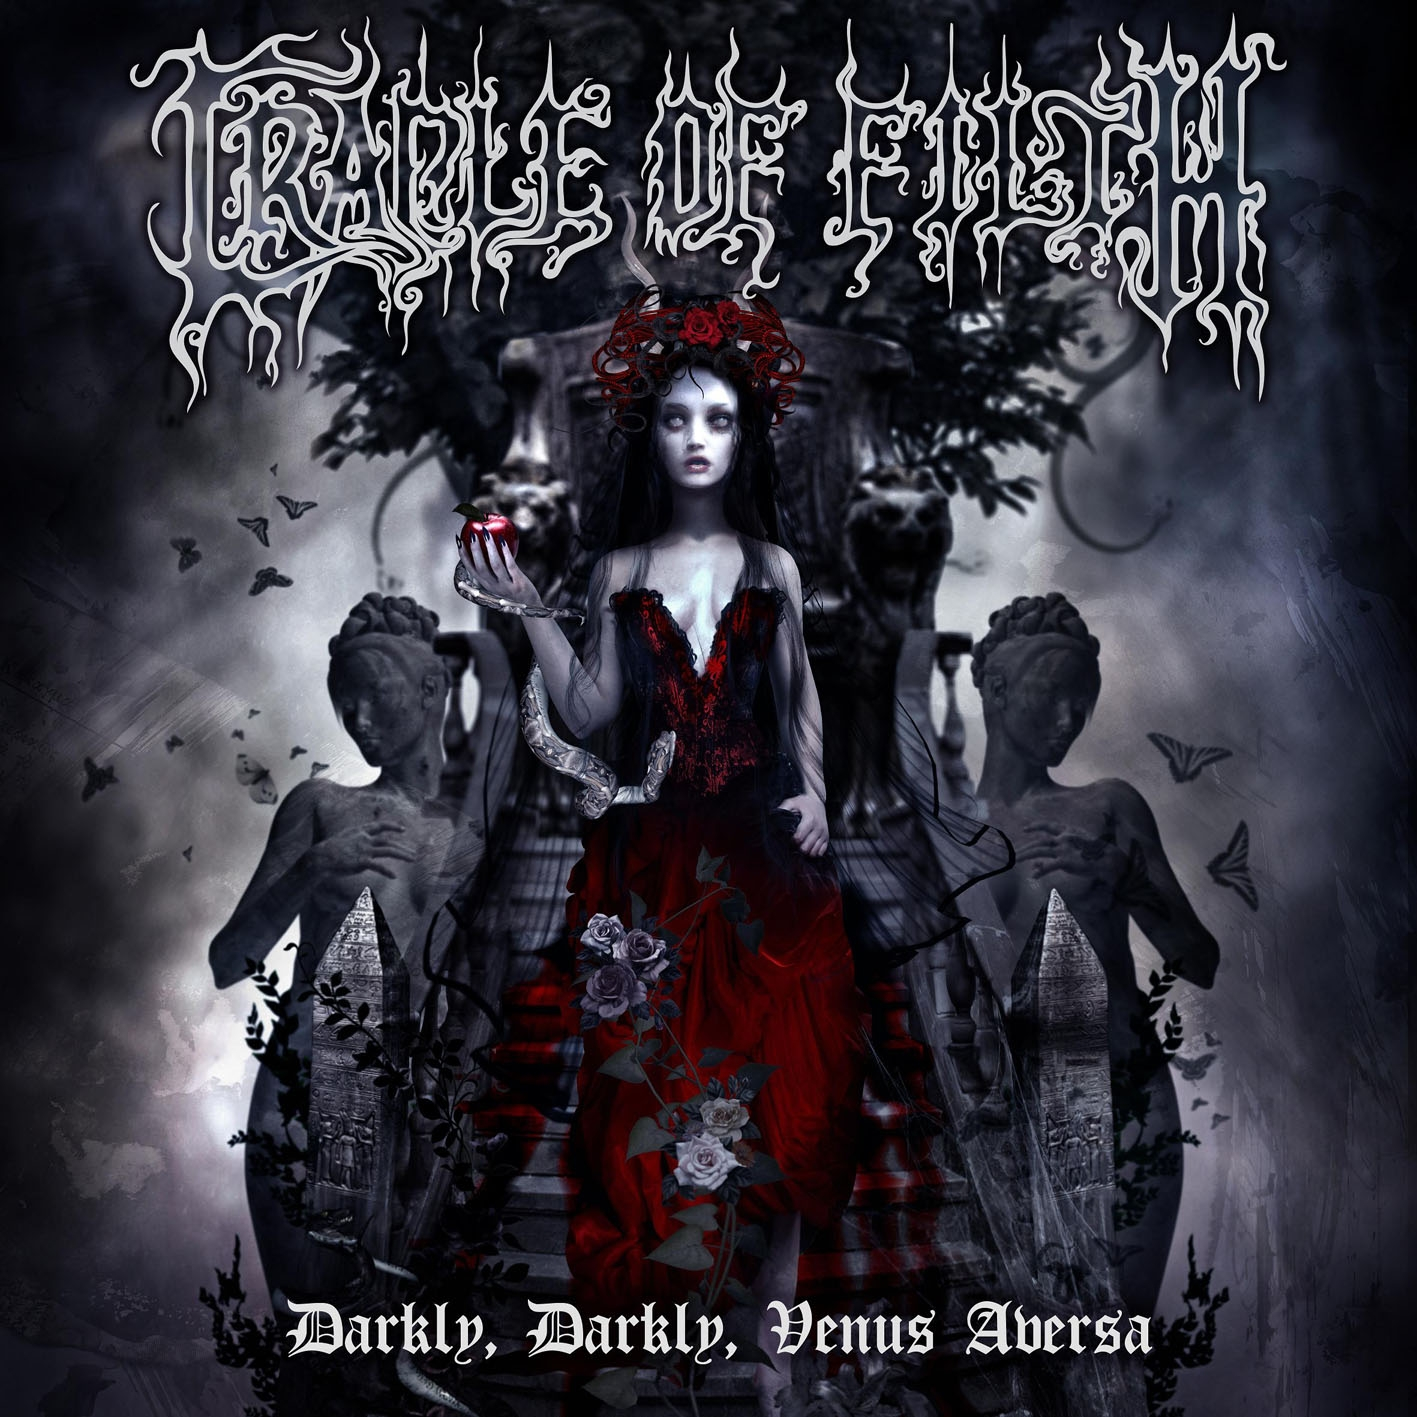 Cradle of Filth Cover Album Album Review Cradle of Filth